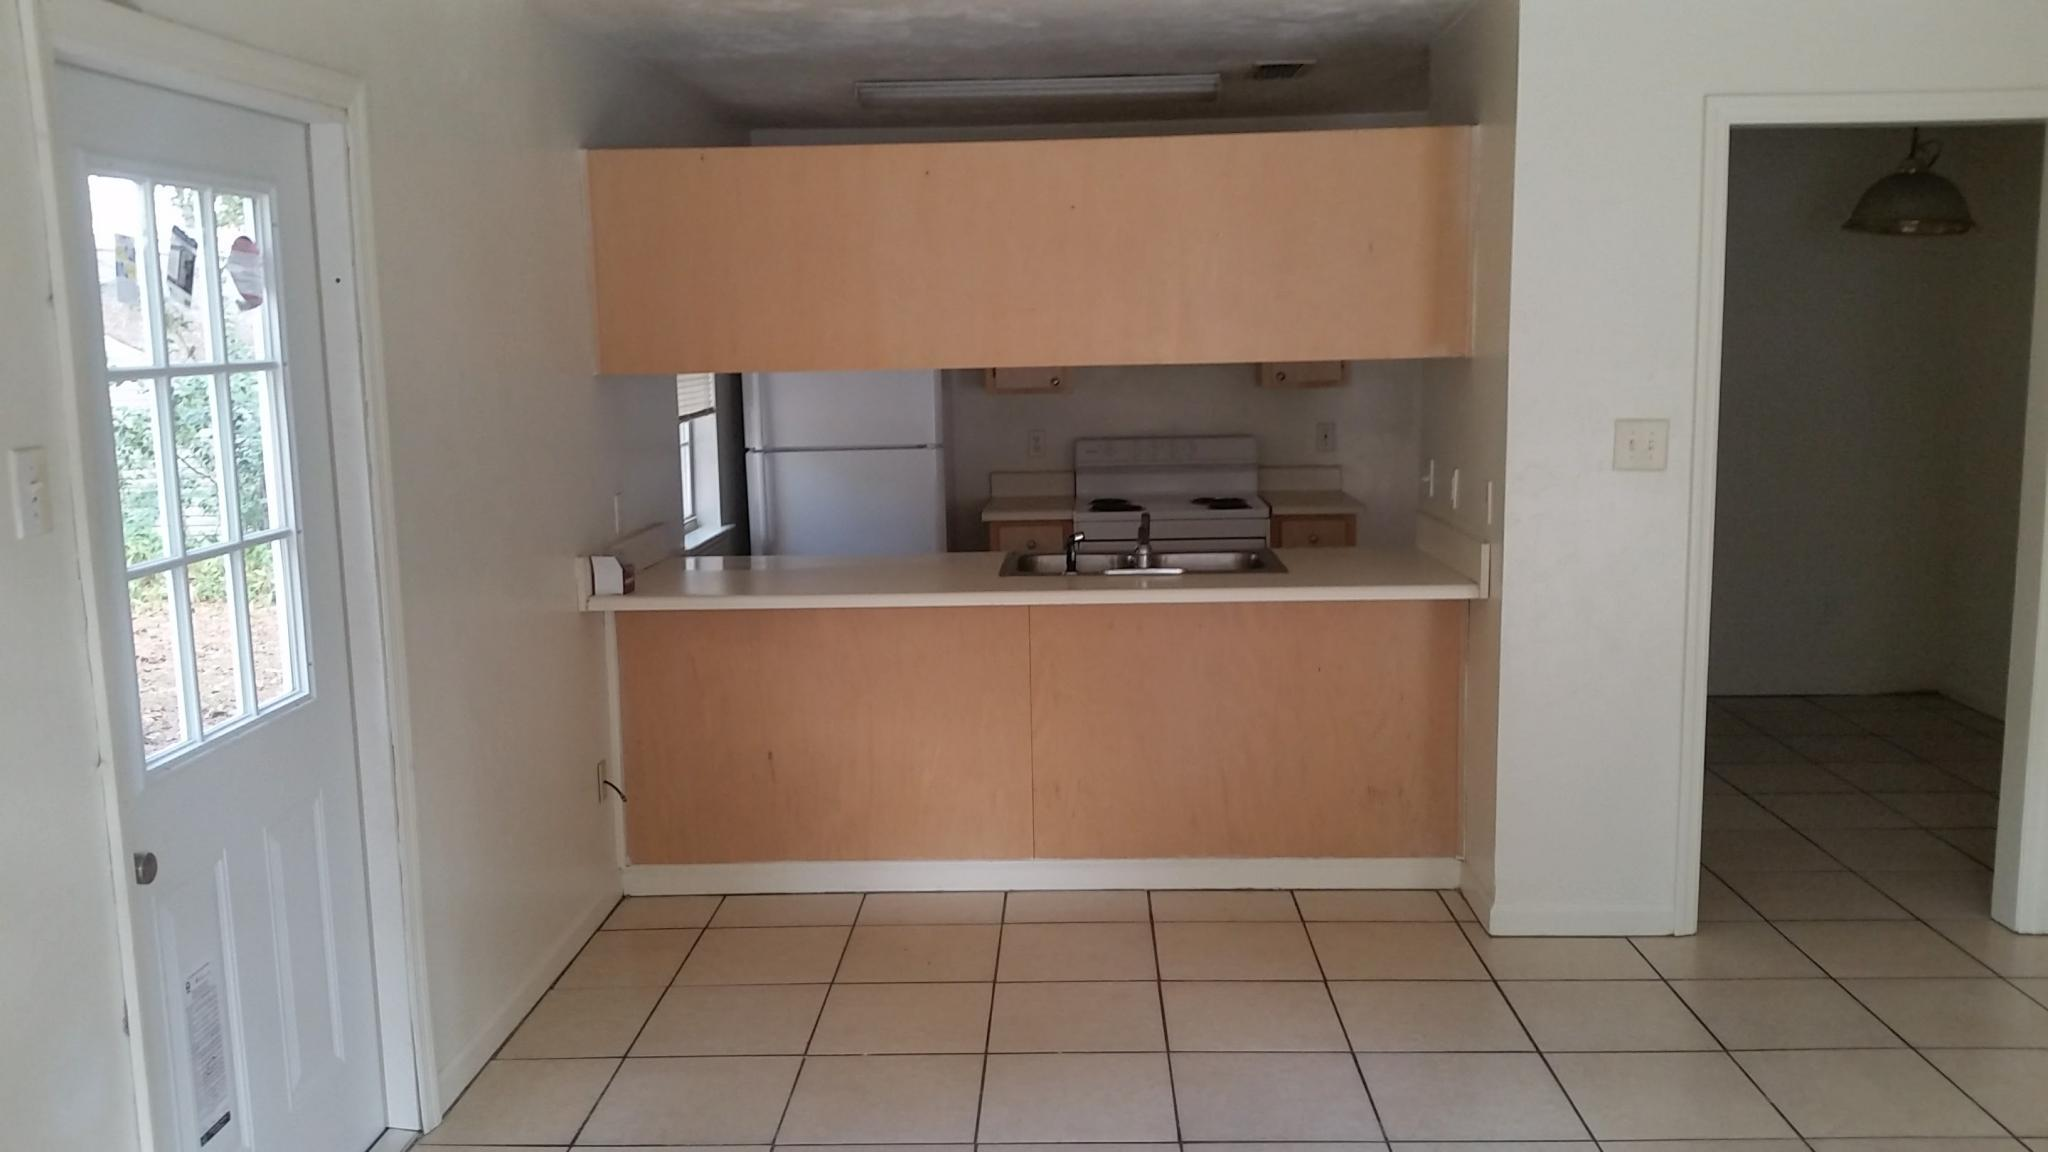 locations apartments bedroom providence pointe tallahassee one